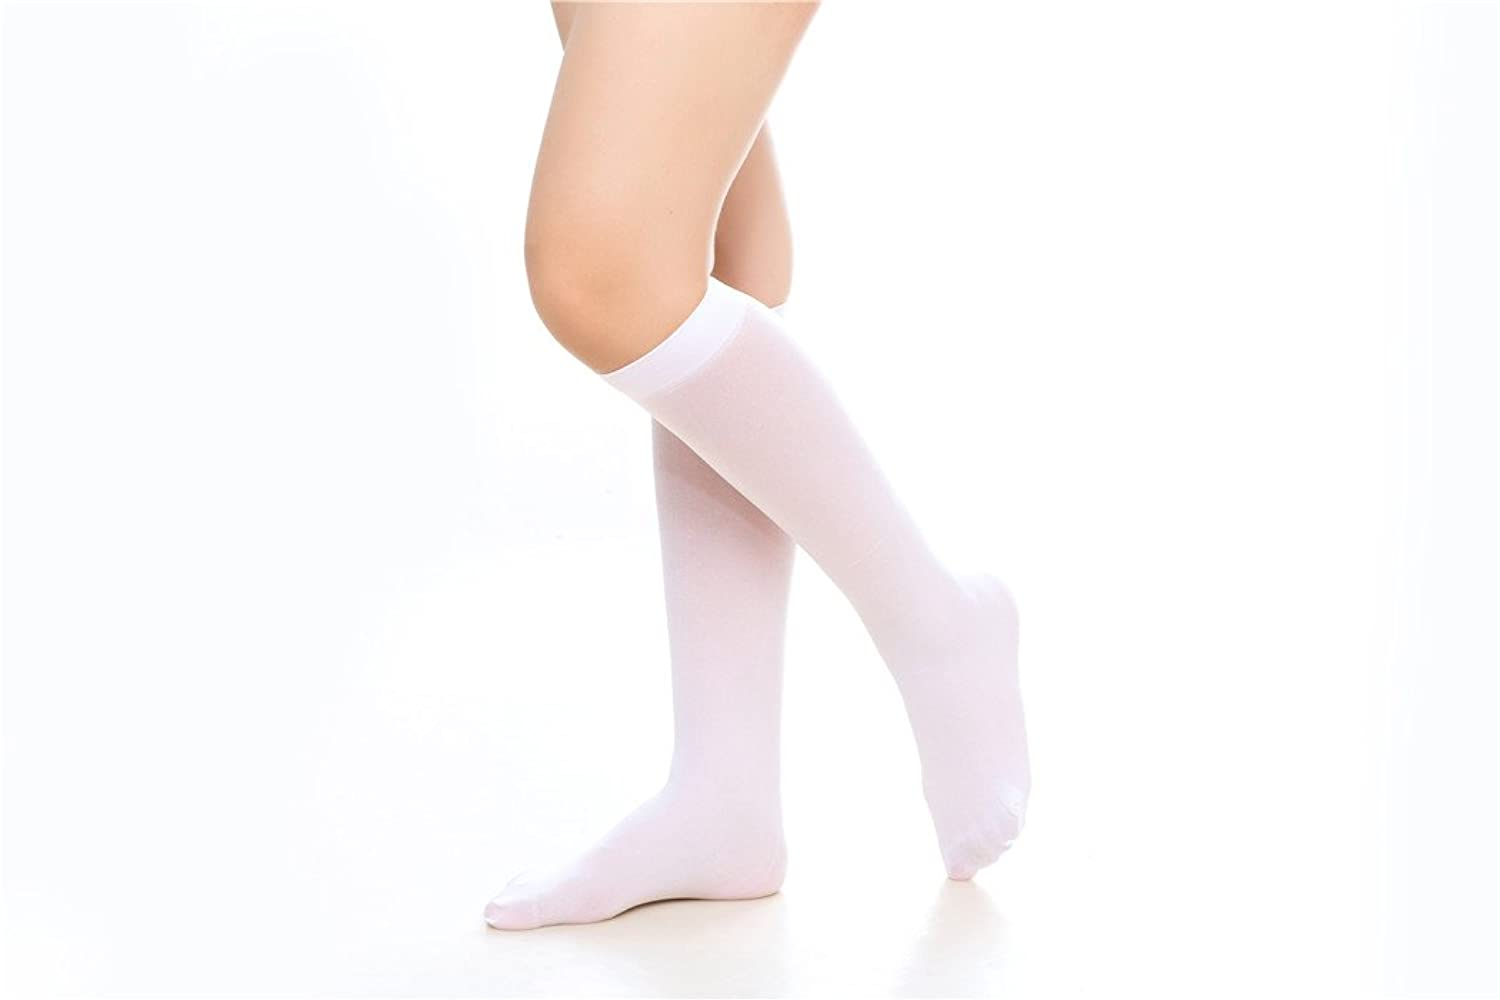 6 Pairs Women's Opaque Spandex Trouser Knee High Socks Queen Size 9-13